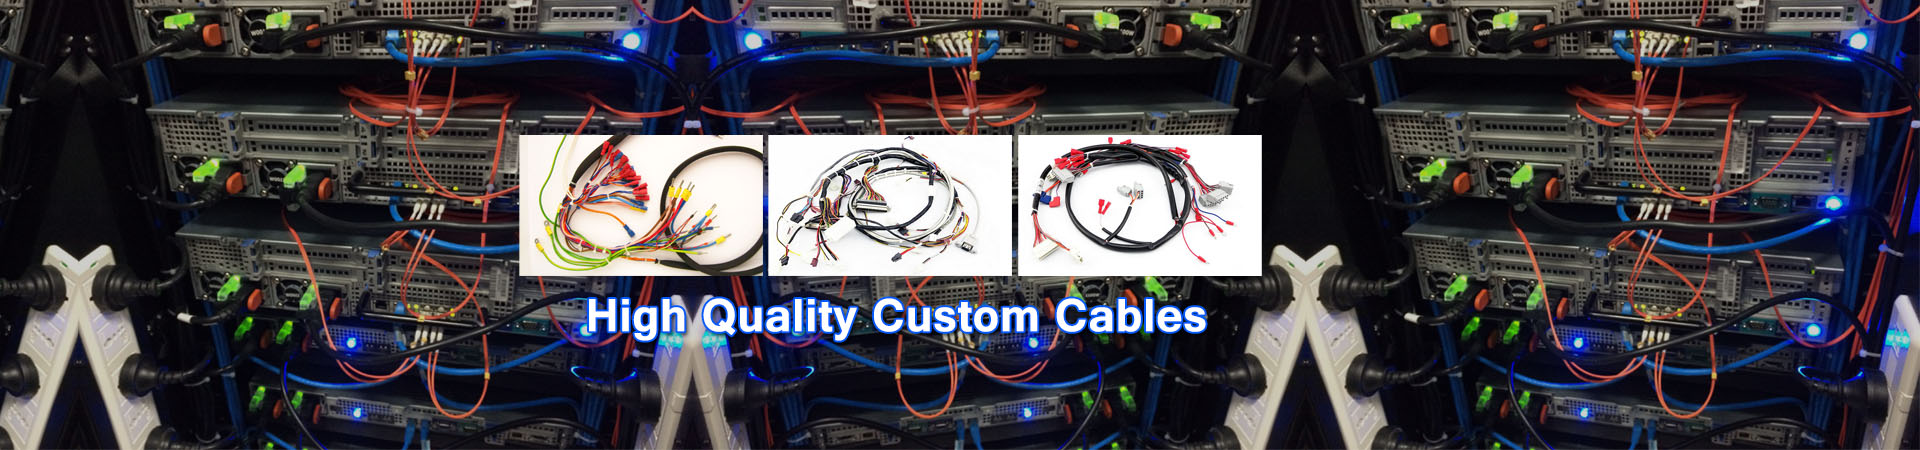 High Quality Custom Cables